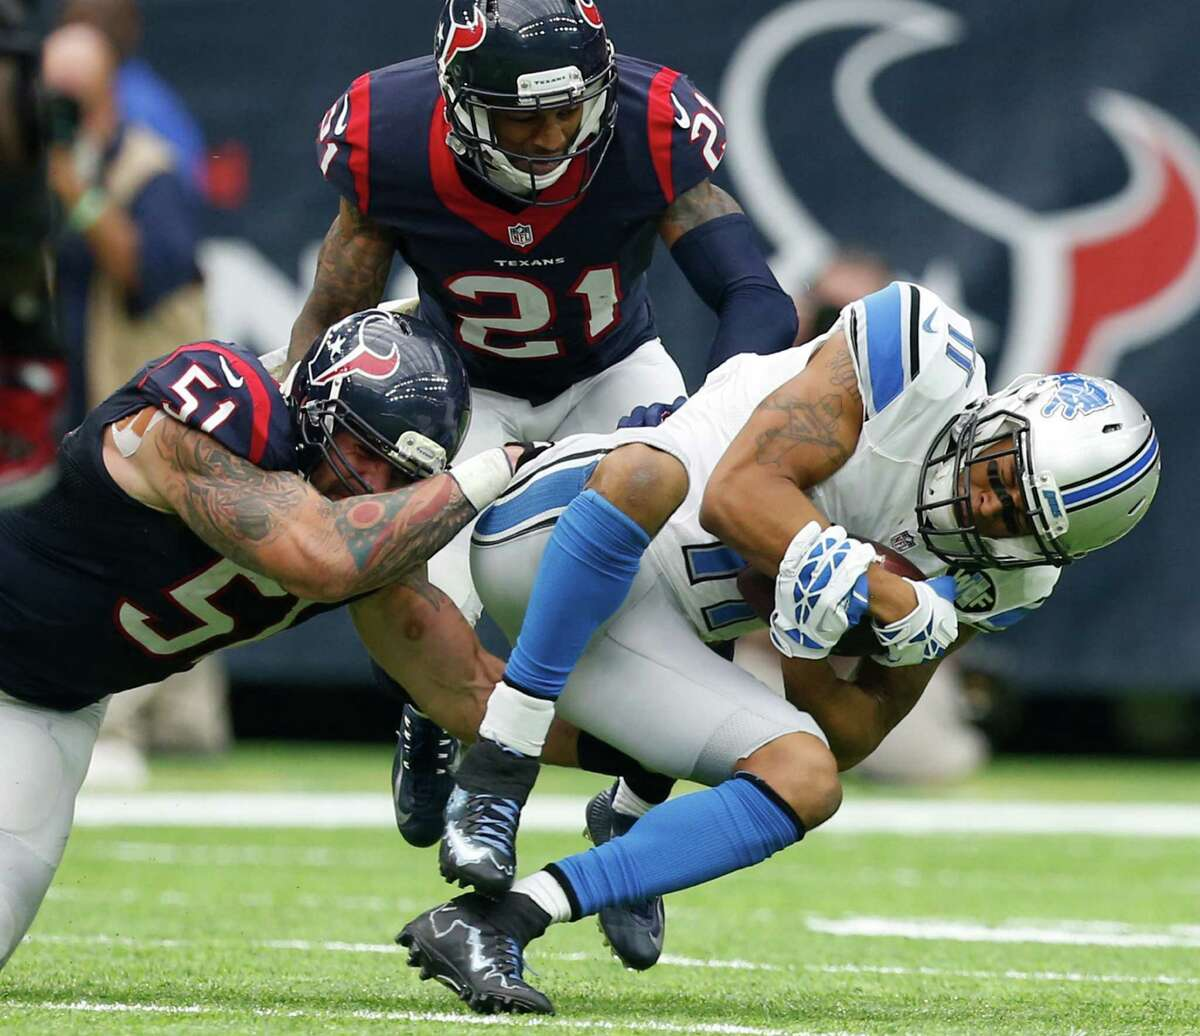 Detroit Lions wide receiver Marvin Jones (11) is stopped by Houston Texans outside linebacker John Simon (51) and cornerback A.J. Bouye (21) during the third quarter of an NFL football game at NRG Stadium on Sunday, Oct. 30, 2016, in Houston.